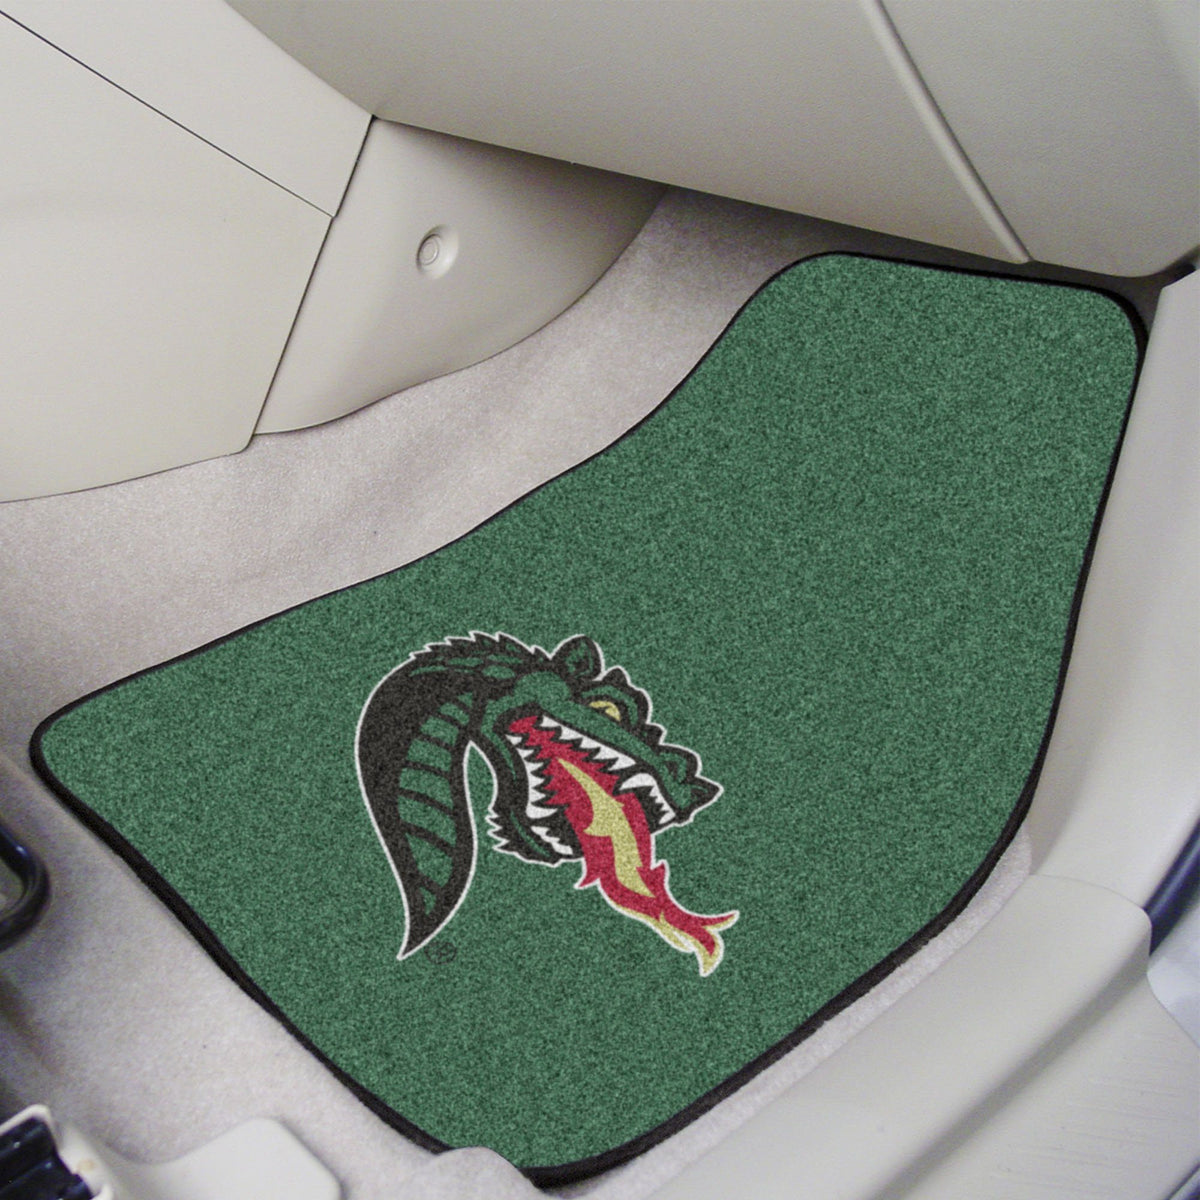 Collegiate - Carpet Car Mat, 2-Piece Set: T - Z Collegiate Car Mat, Front Car Mats, 2-pc Carpet Car Mat Set, Collegiate, Auto Fan Mats UAB